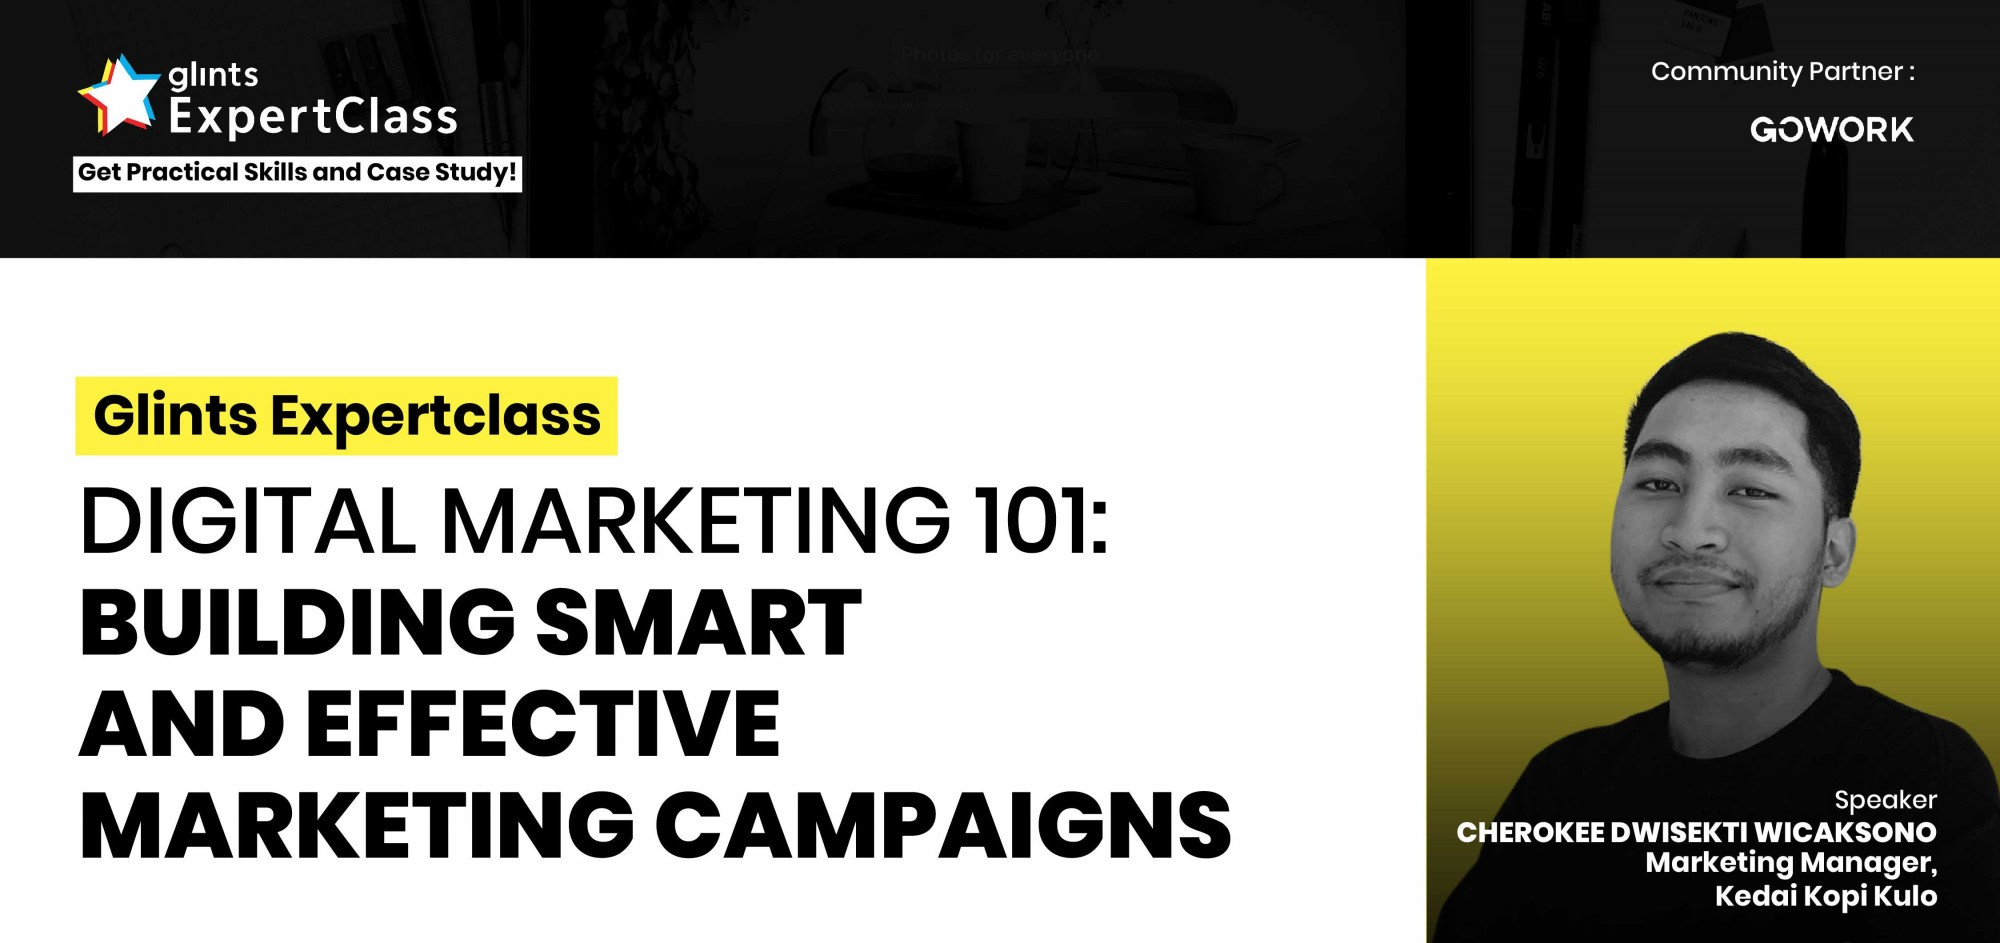 [Online Glints ExpertClass] Digital Marketing 101: Building Smart And Effective Marketing Campaigns